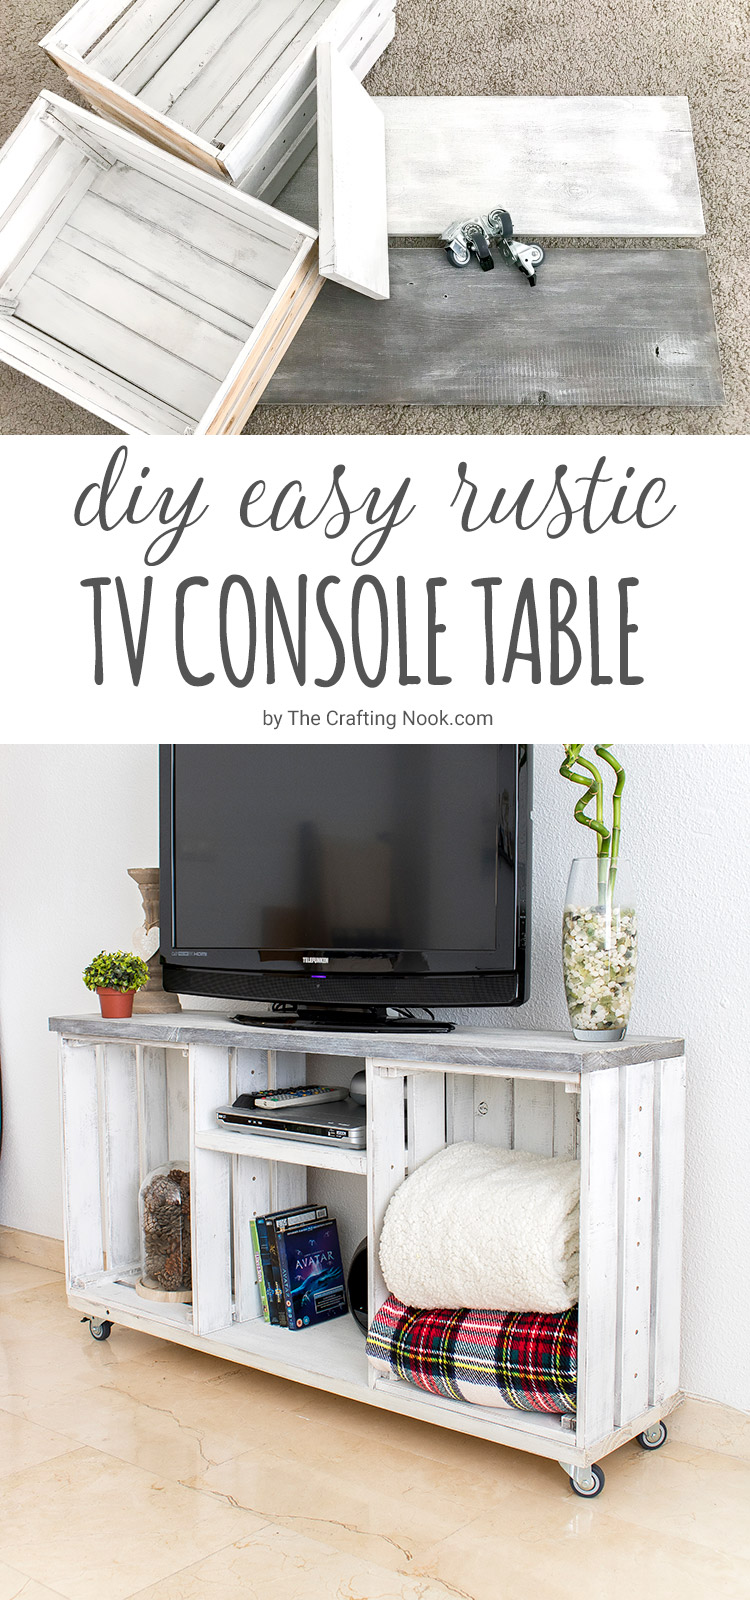 DIY rustic TV console table of crates (via thecraftingnook.com)